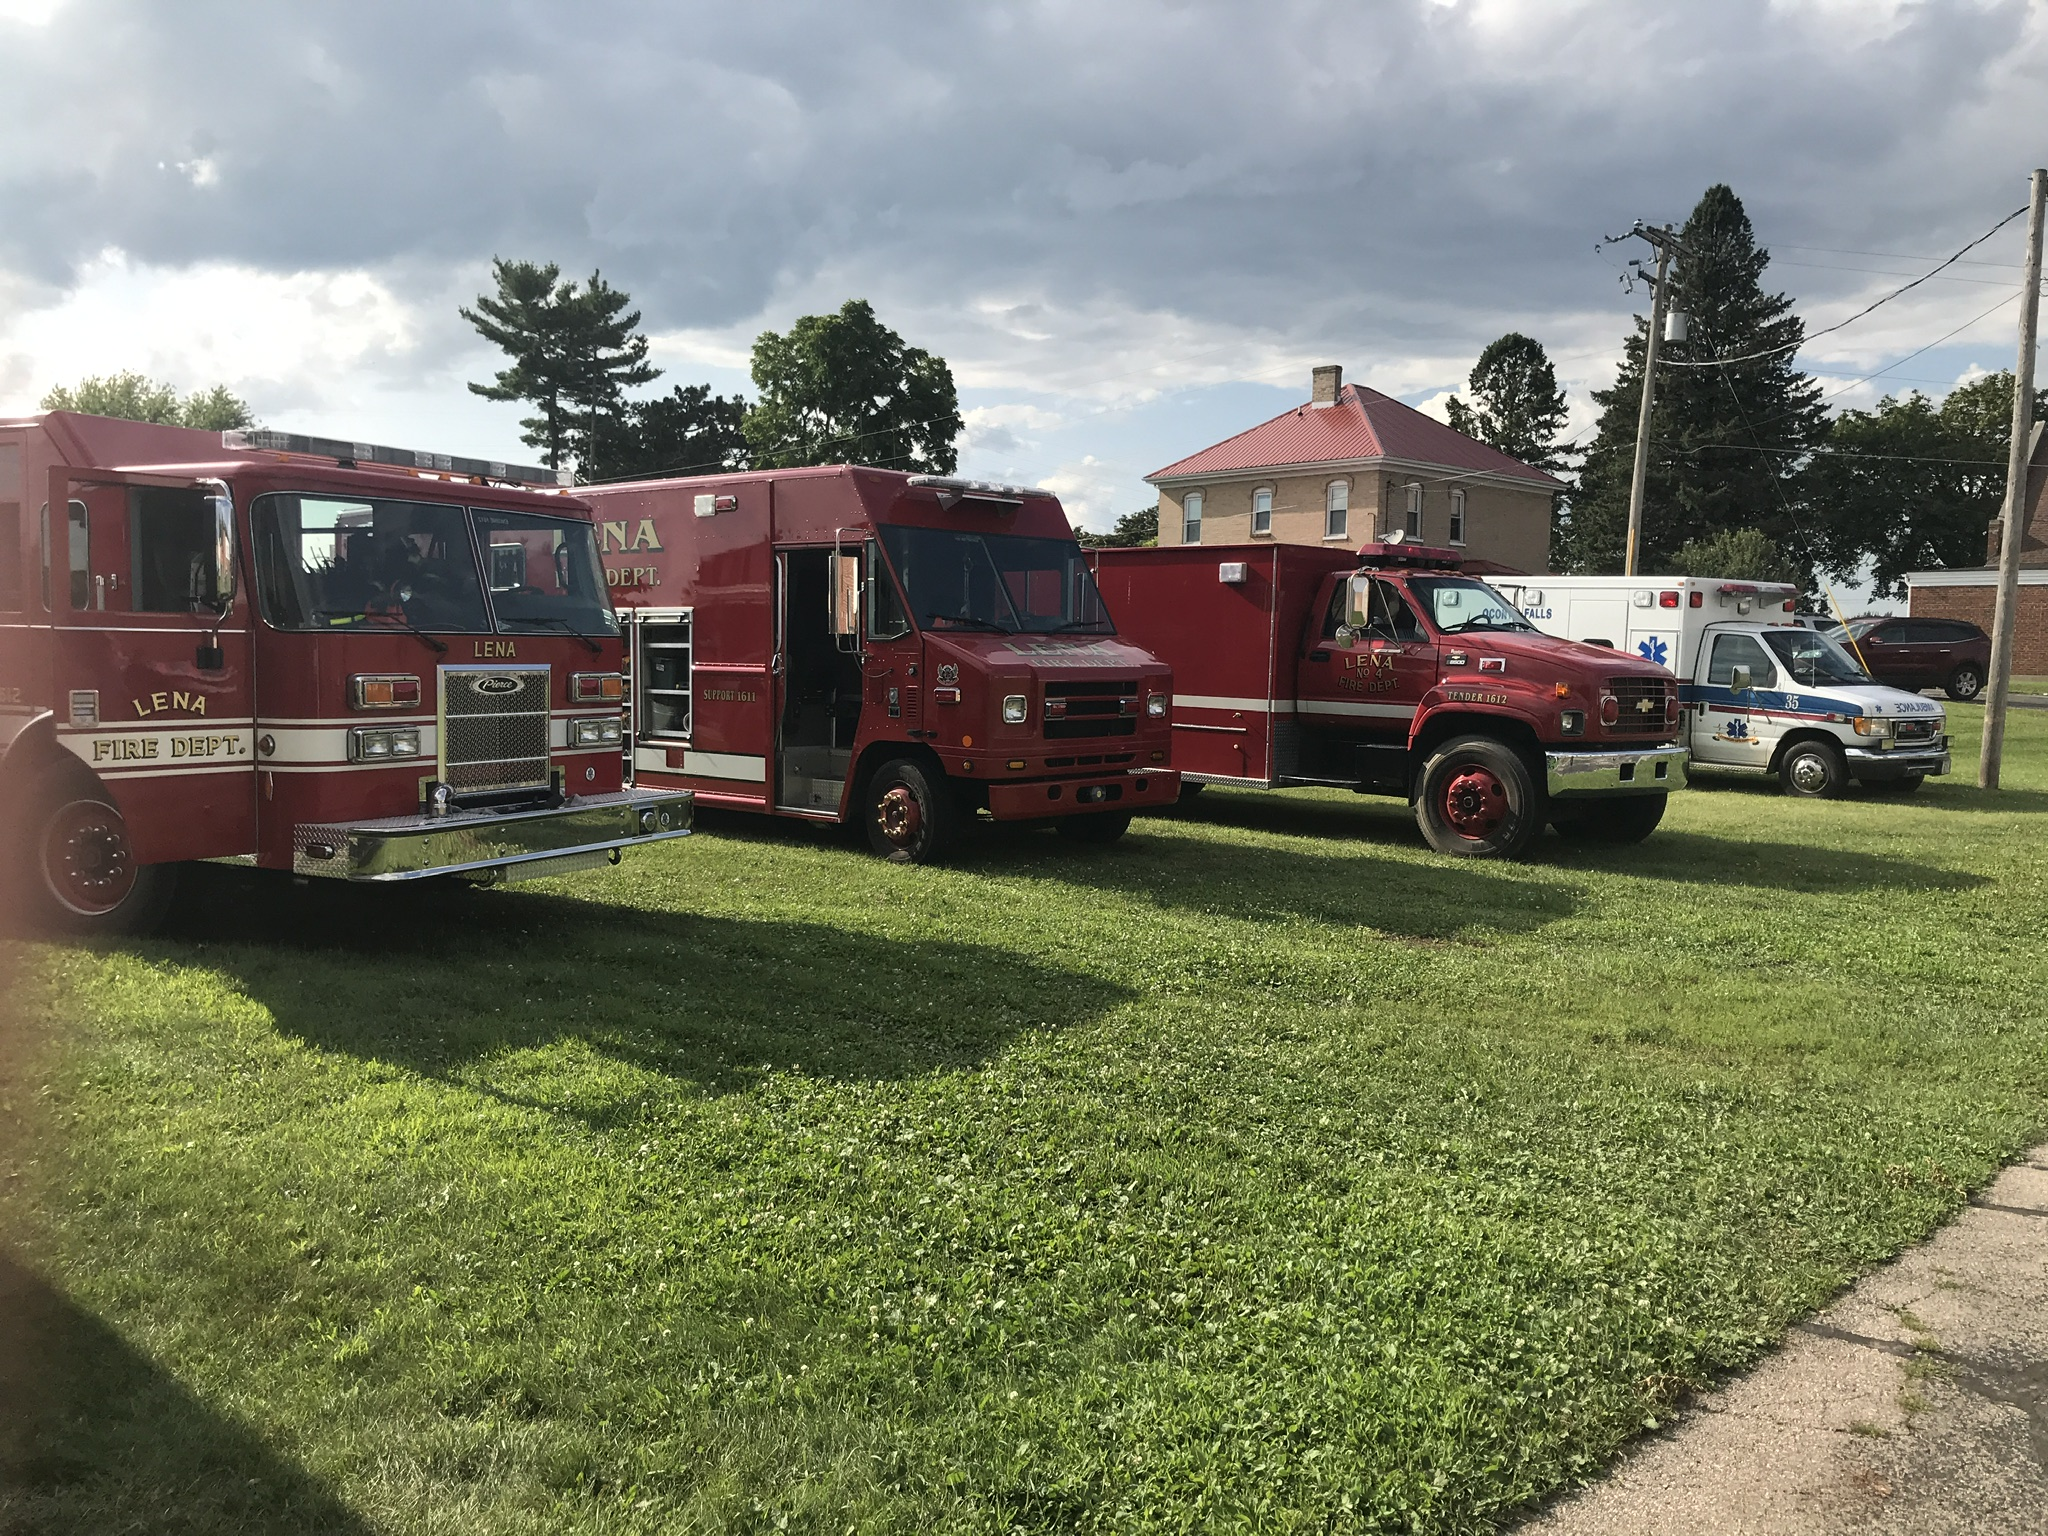 Local police and fire departments and the State Patrol had vehicles on display.